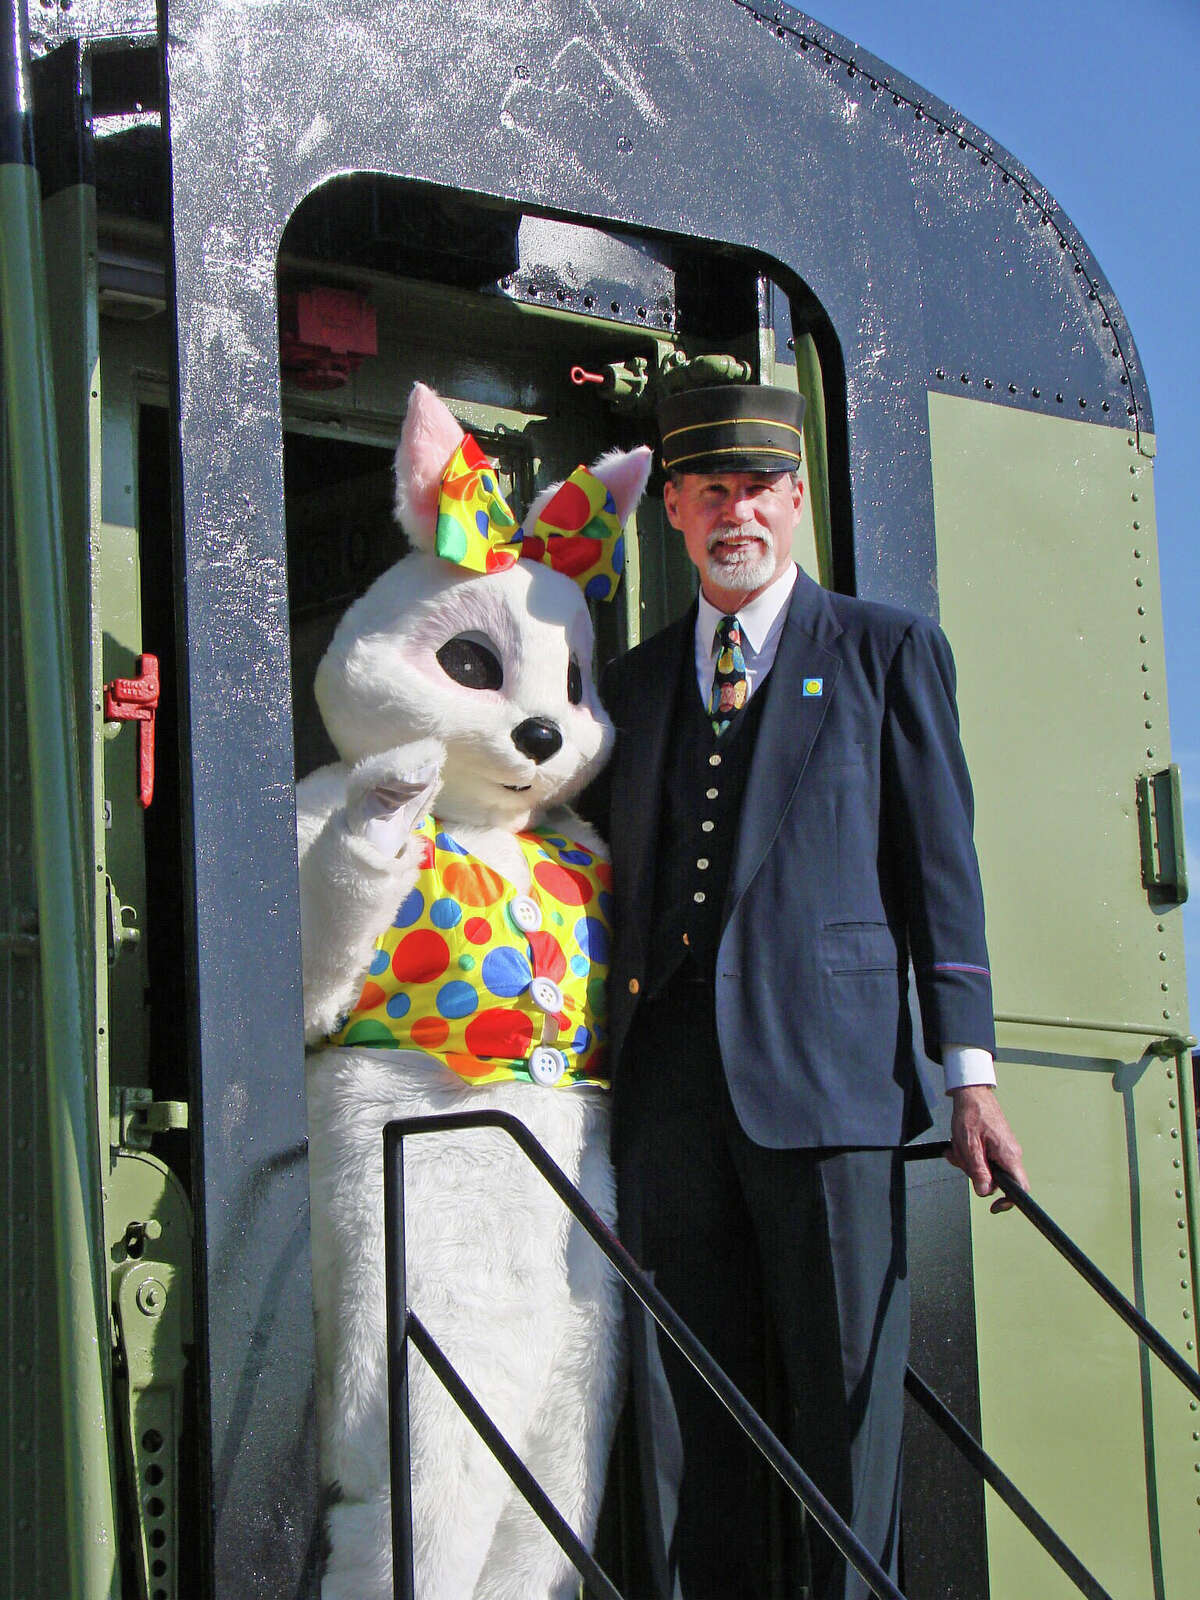 The Easter Bunny will return to Danbury Railway Museum on 18 and 19 from 10 a.m. to 4:30 p.m.Families can take a ride in a vintage train through the historic downtown rail yard to visit him. Trains will leave every 30 minutes from 12:30 to 3:30 p.m. Admission is $10 for those age 2 and over, and each child will receive a small gift from the bunny. Find out more.